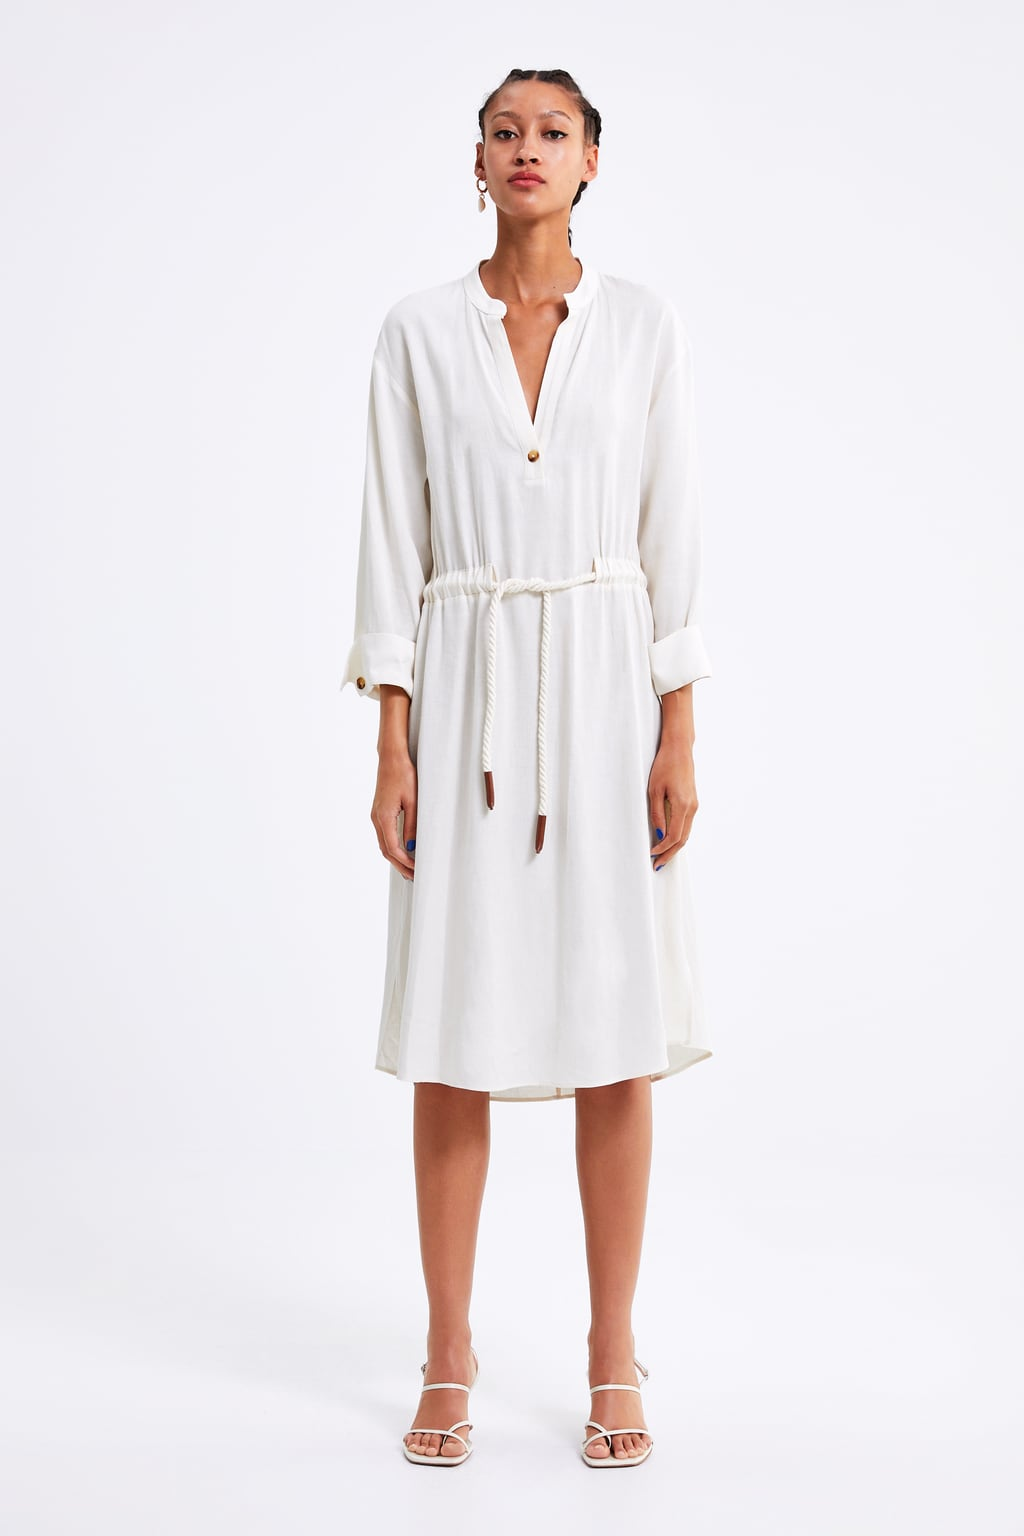 white dress with rope belt from zara